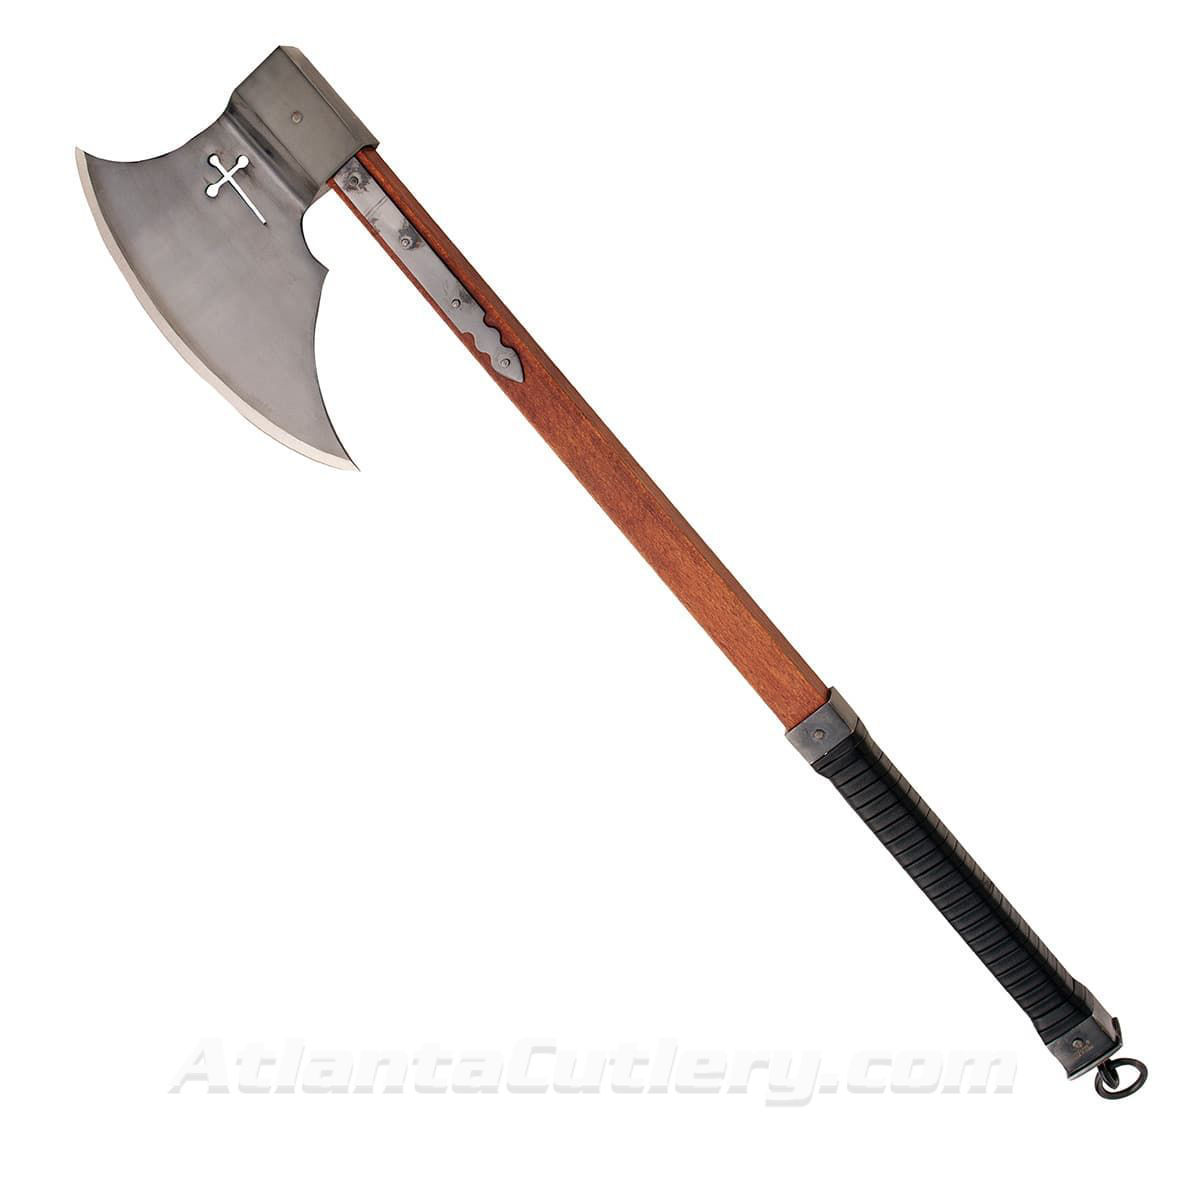 Axe of the Crusades with Sharpened Blade, Hardwood Shaft and Leather Covered Grip